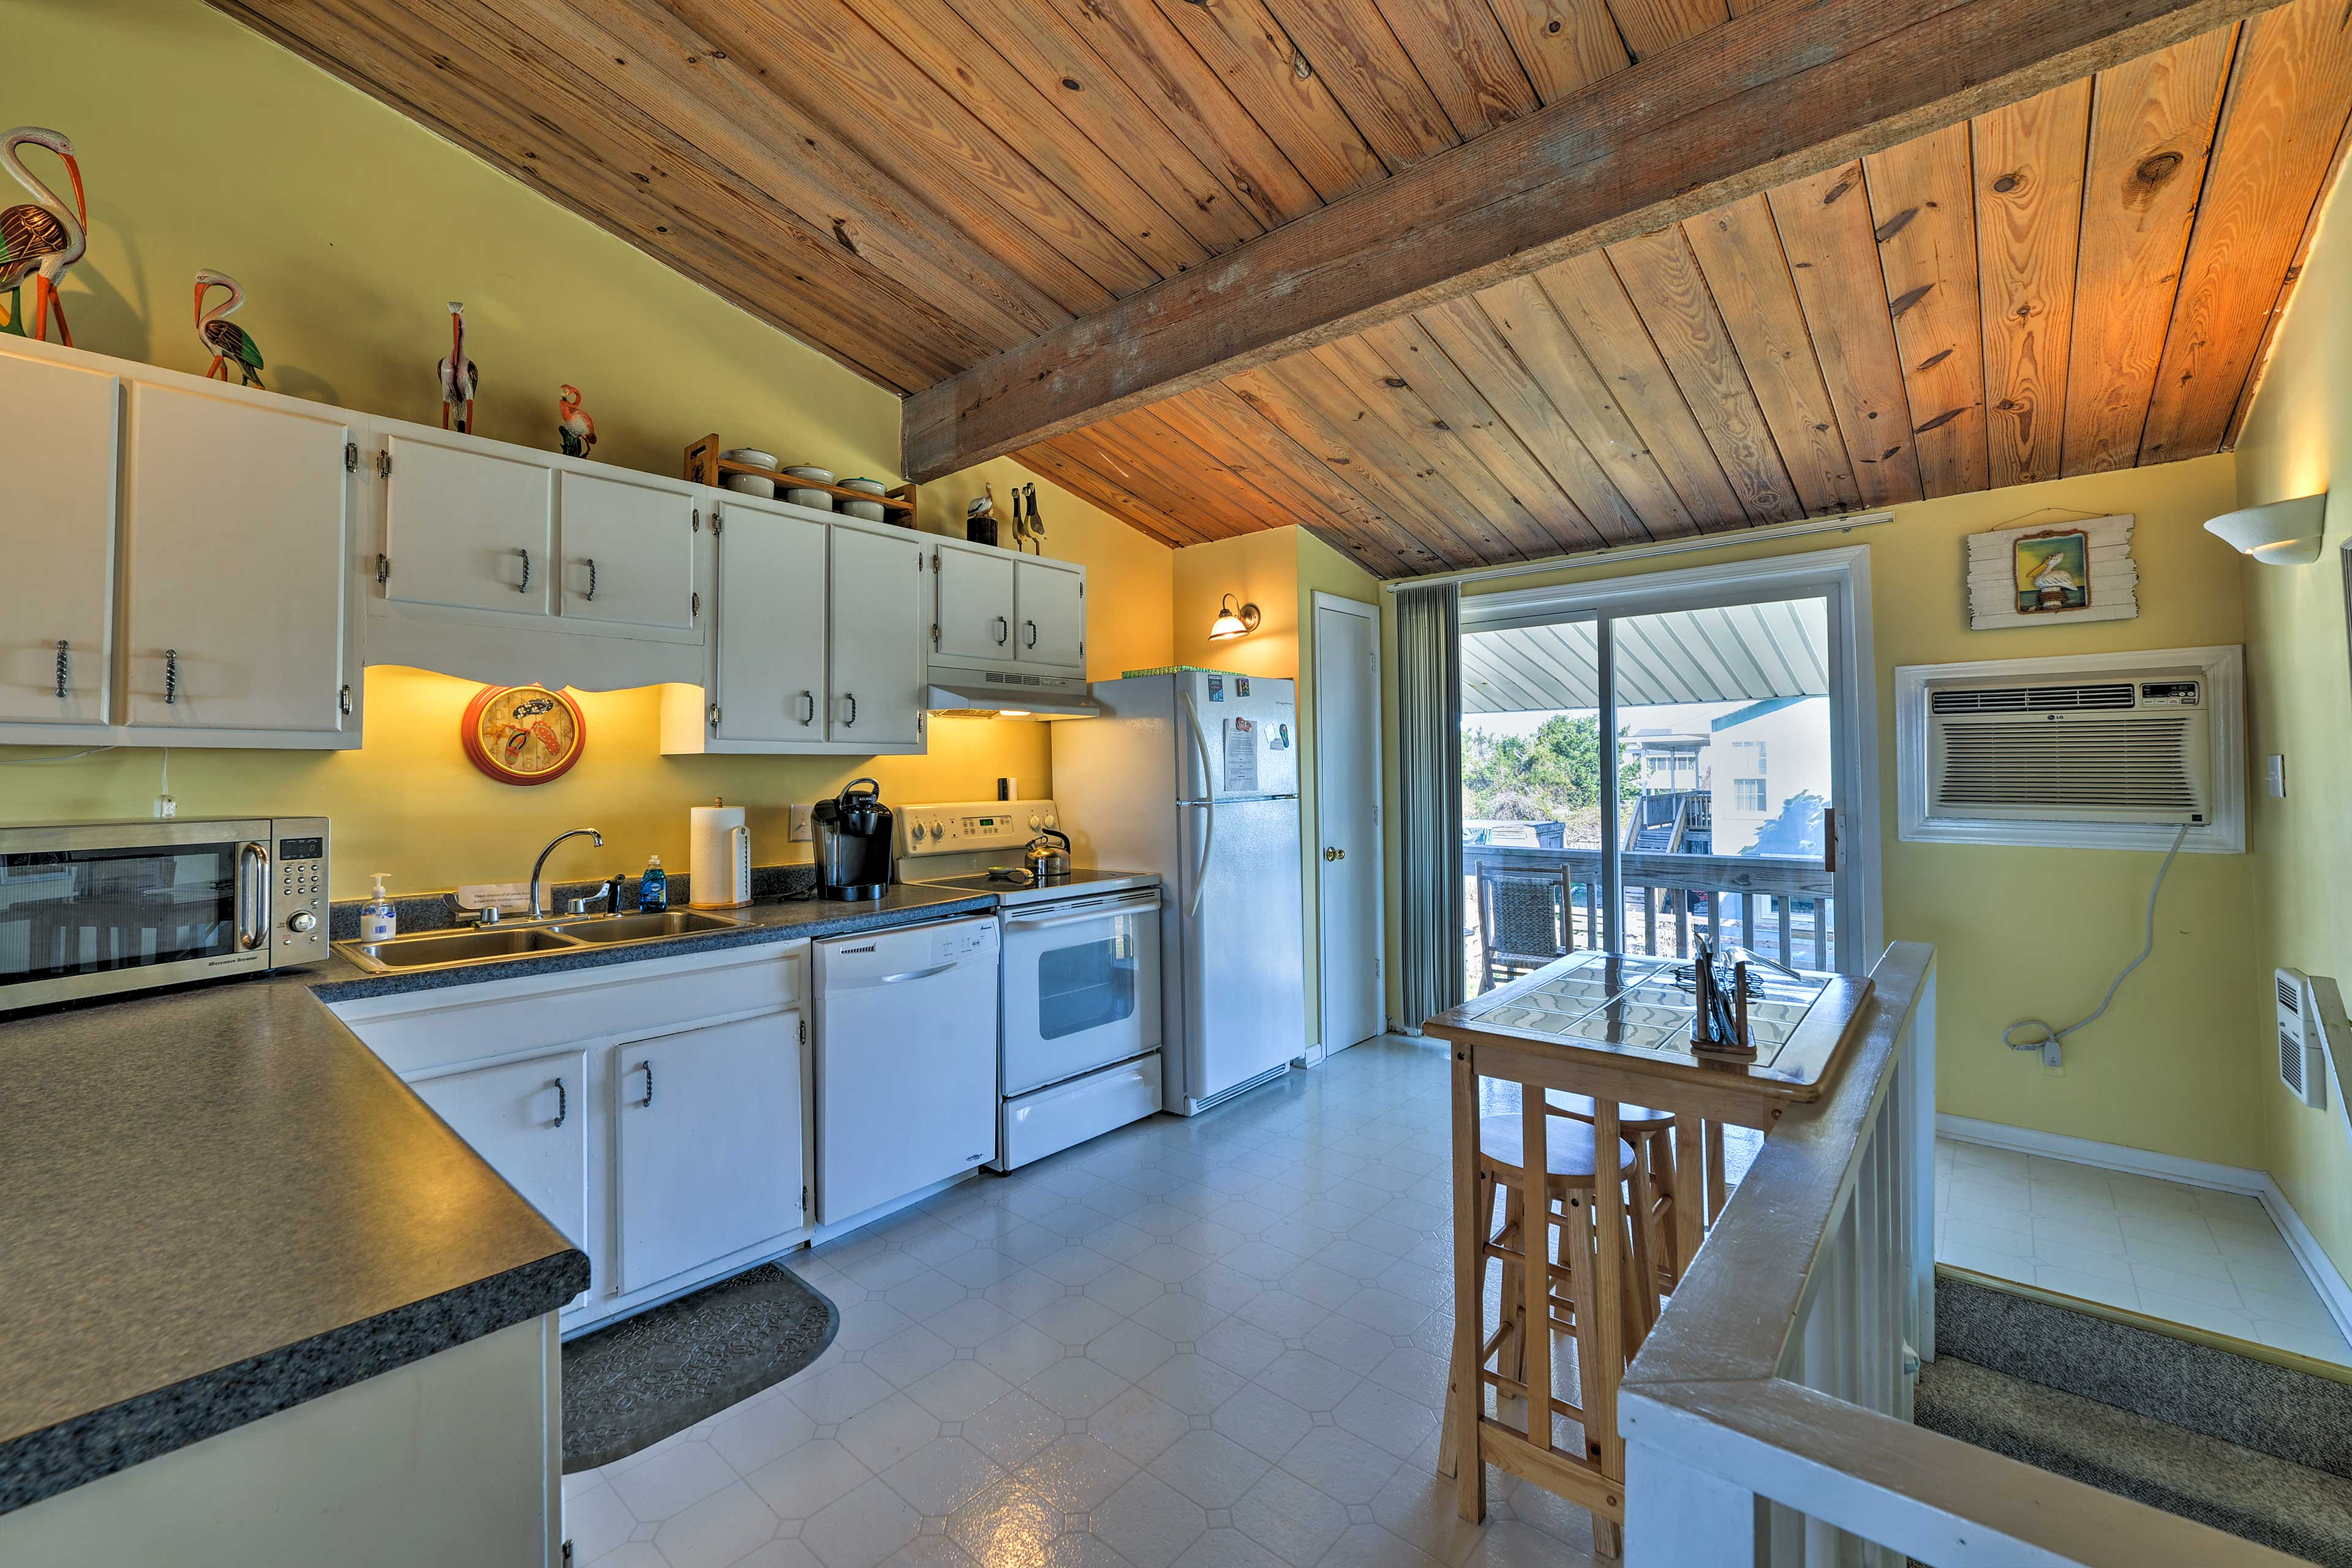 This bright kitchen is fully equipped with all the essentials!